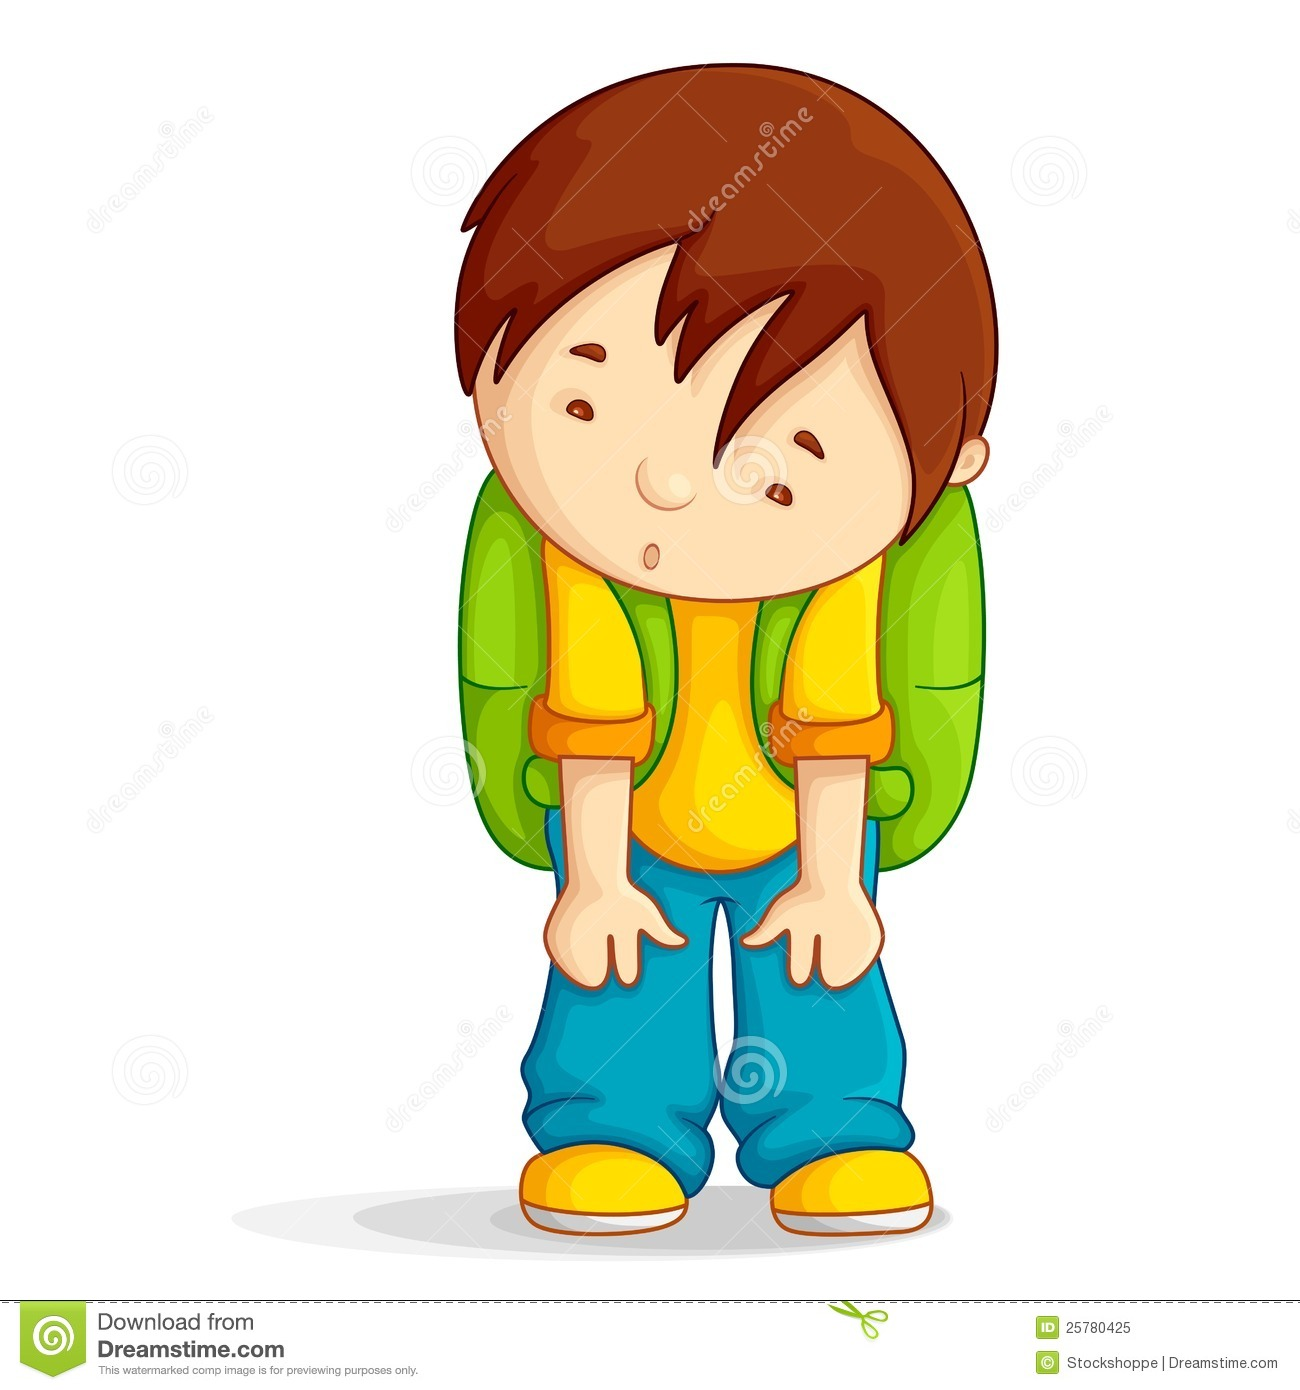 Boys clipart upset.  collection of sad